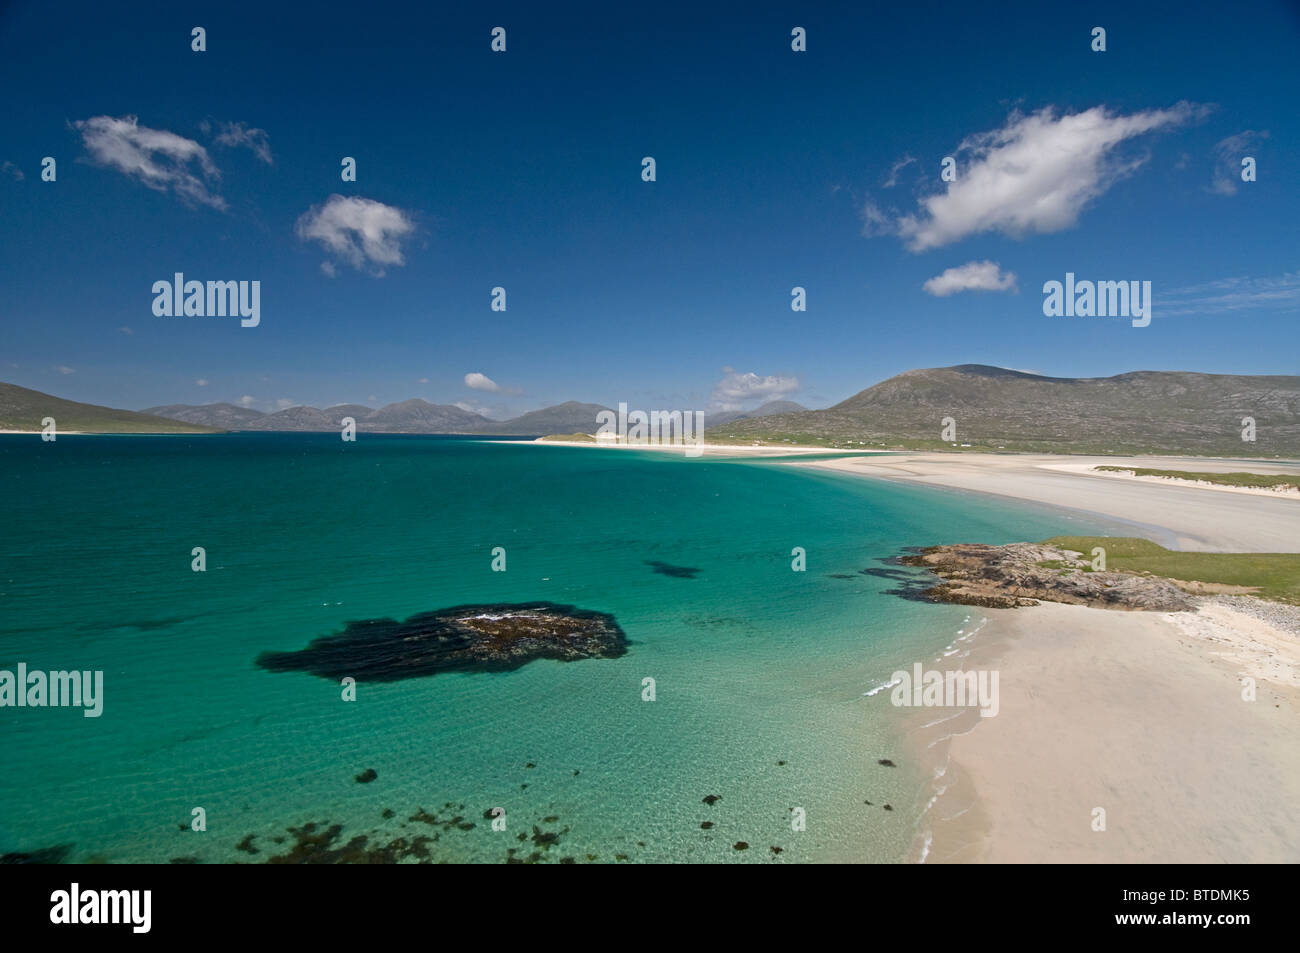 Traigh Sheileboist extensive sands and beach, west Harris, Outer Hebrides, Western Isles Scotland.  SCO 6898 - Stock Image